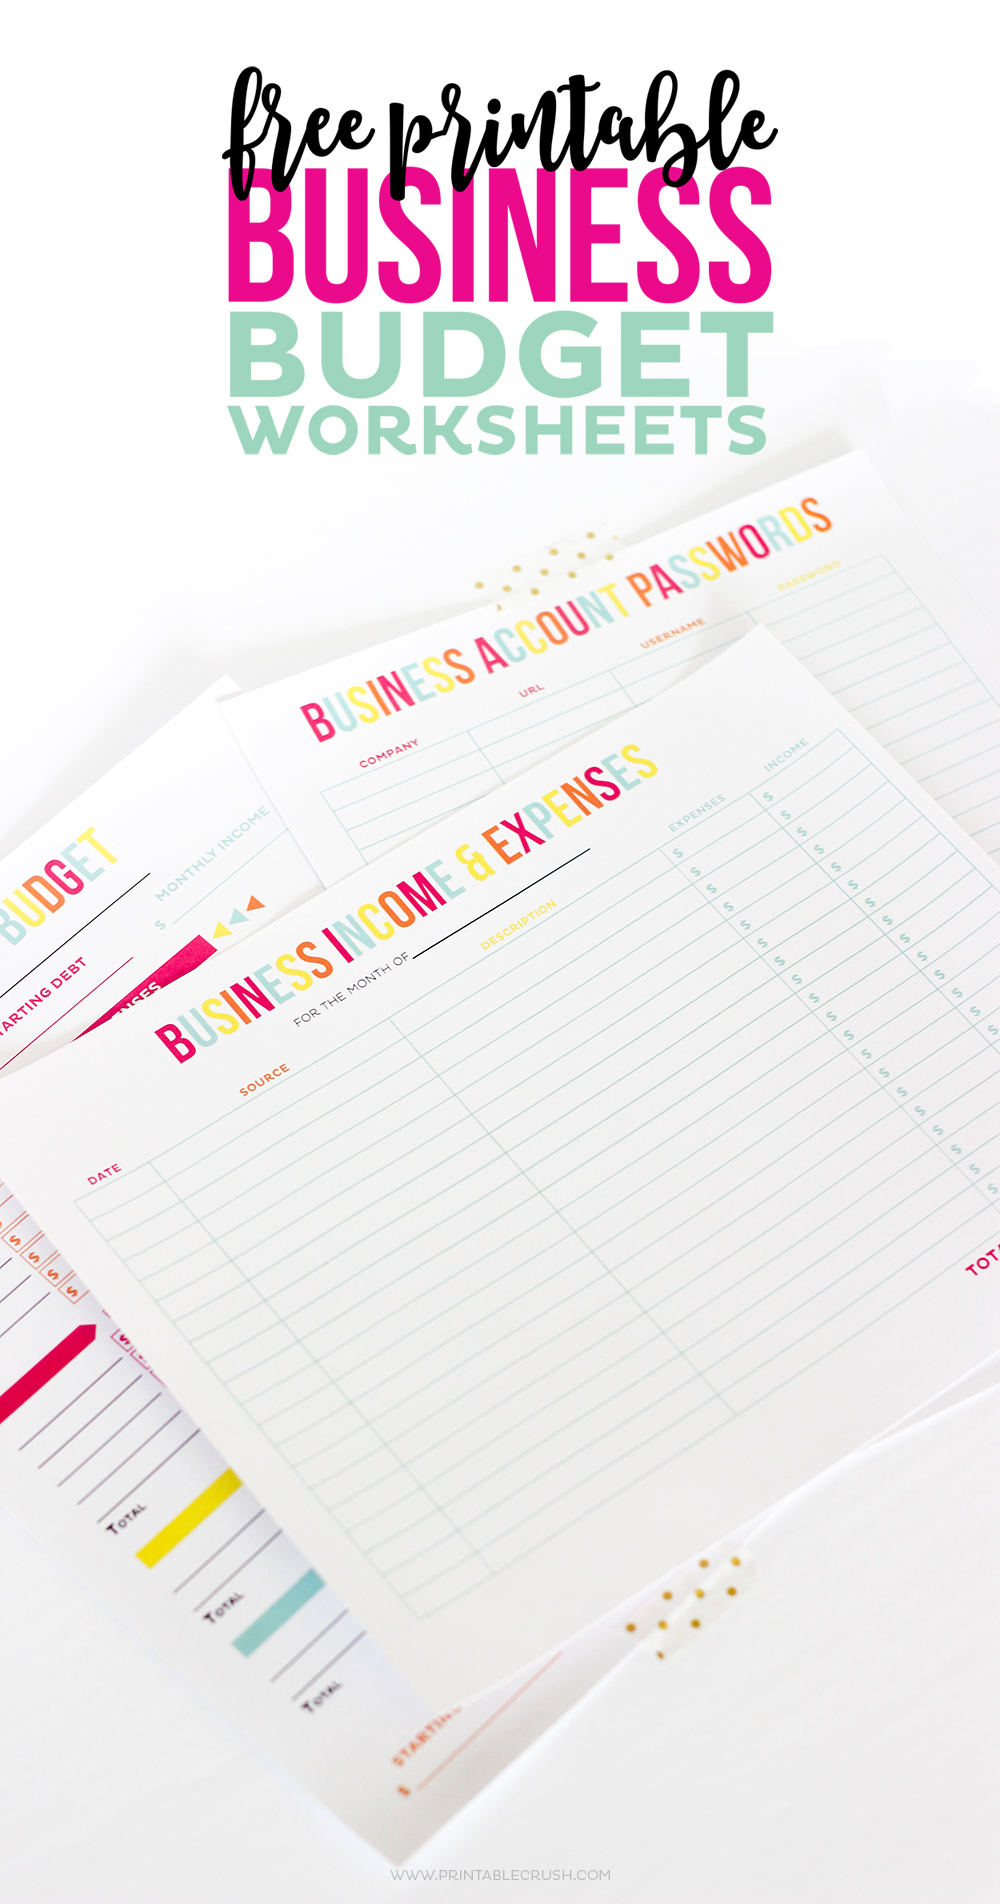 photograph about Printable Expense Tracker known as Absolutely free Printable Small business Spending plan Worksheets - Printable Crush